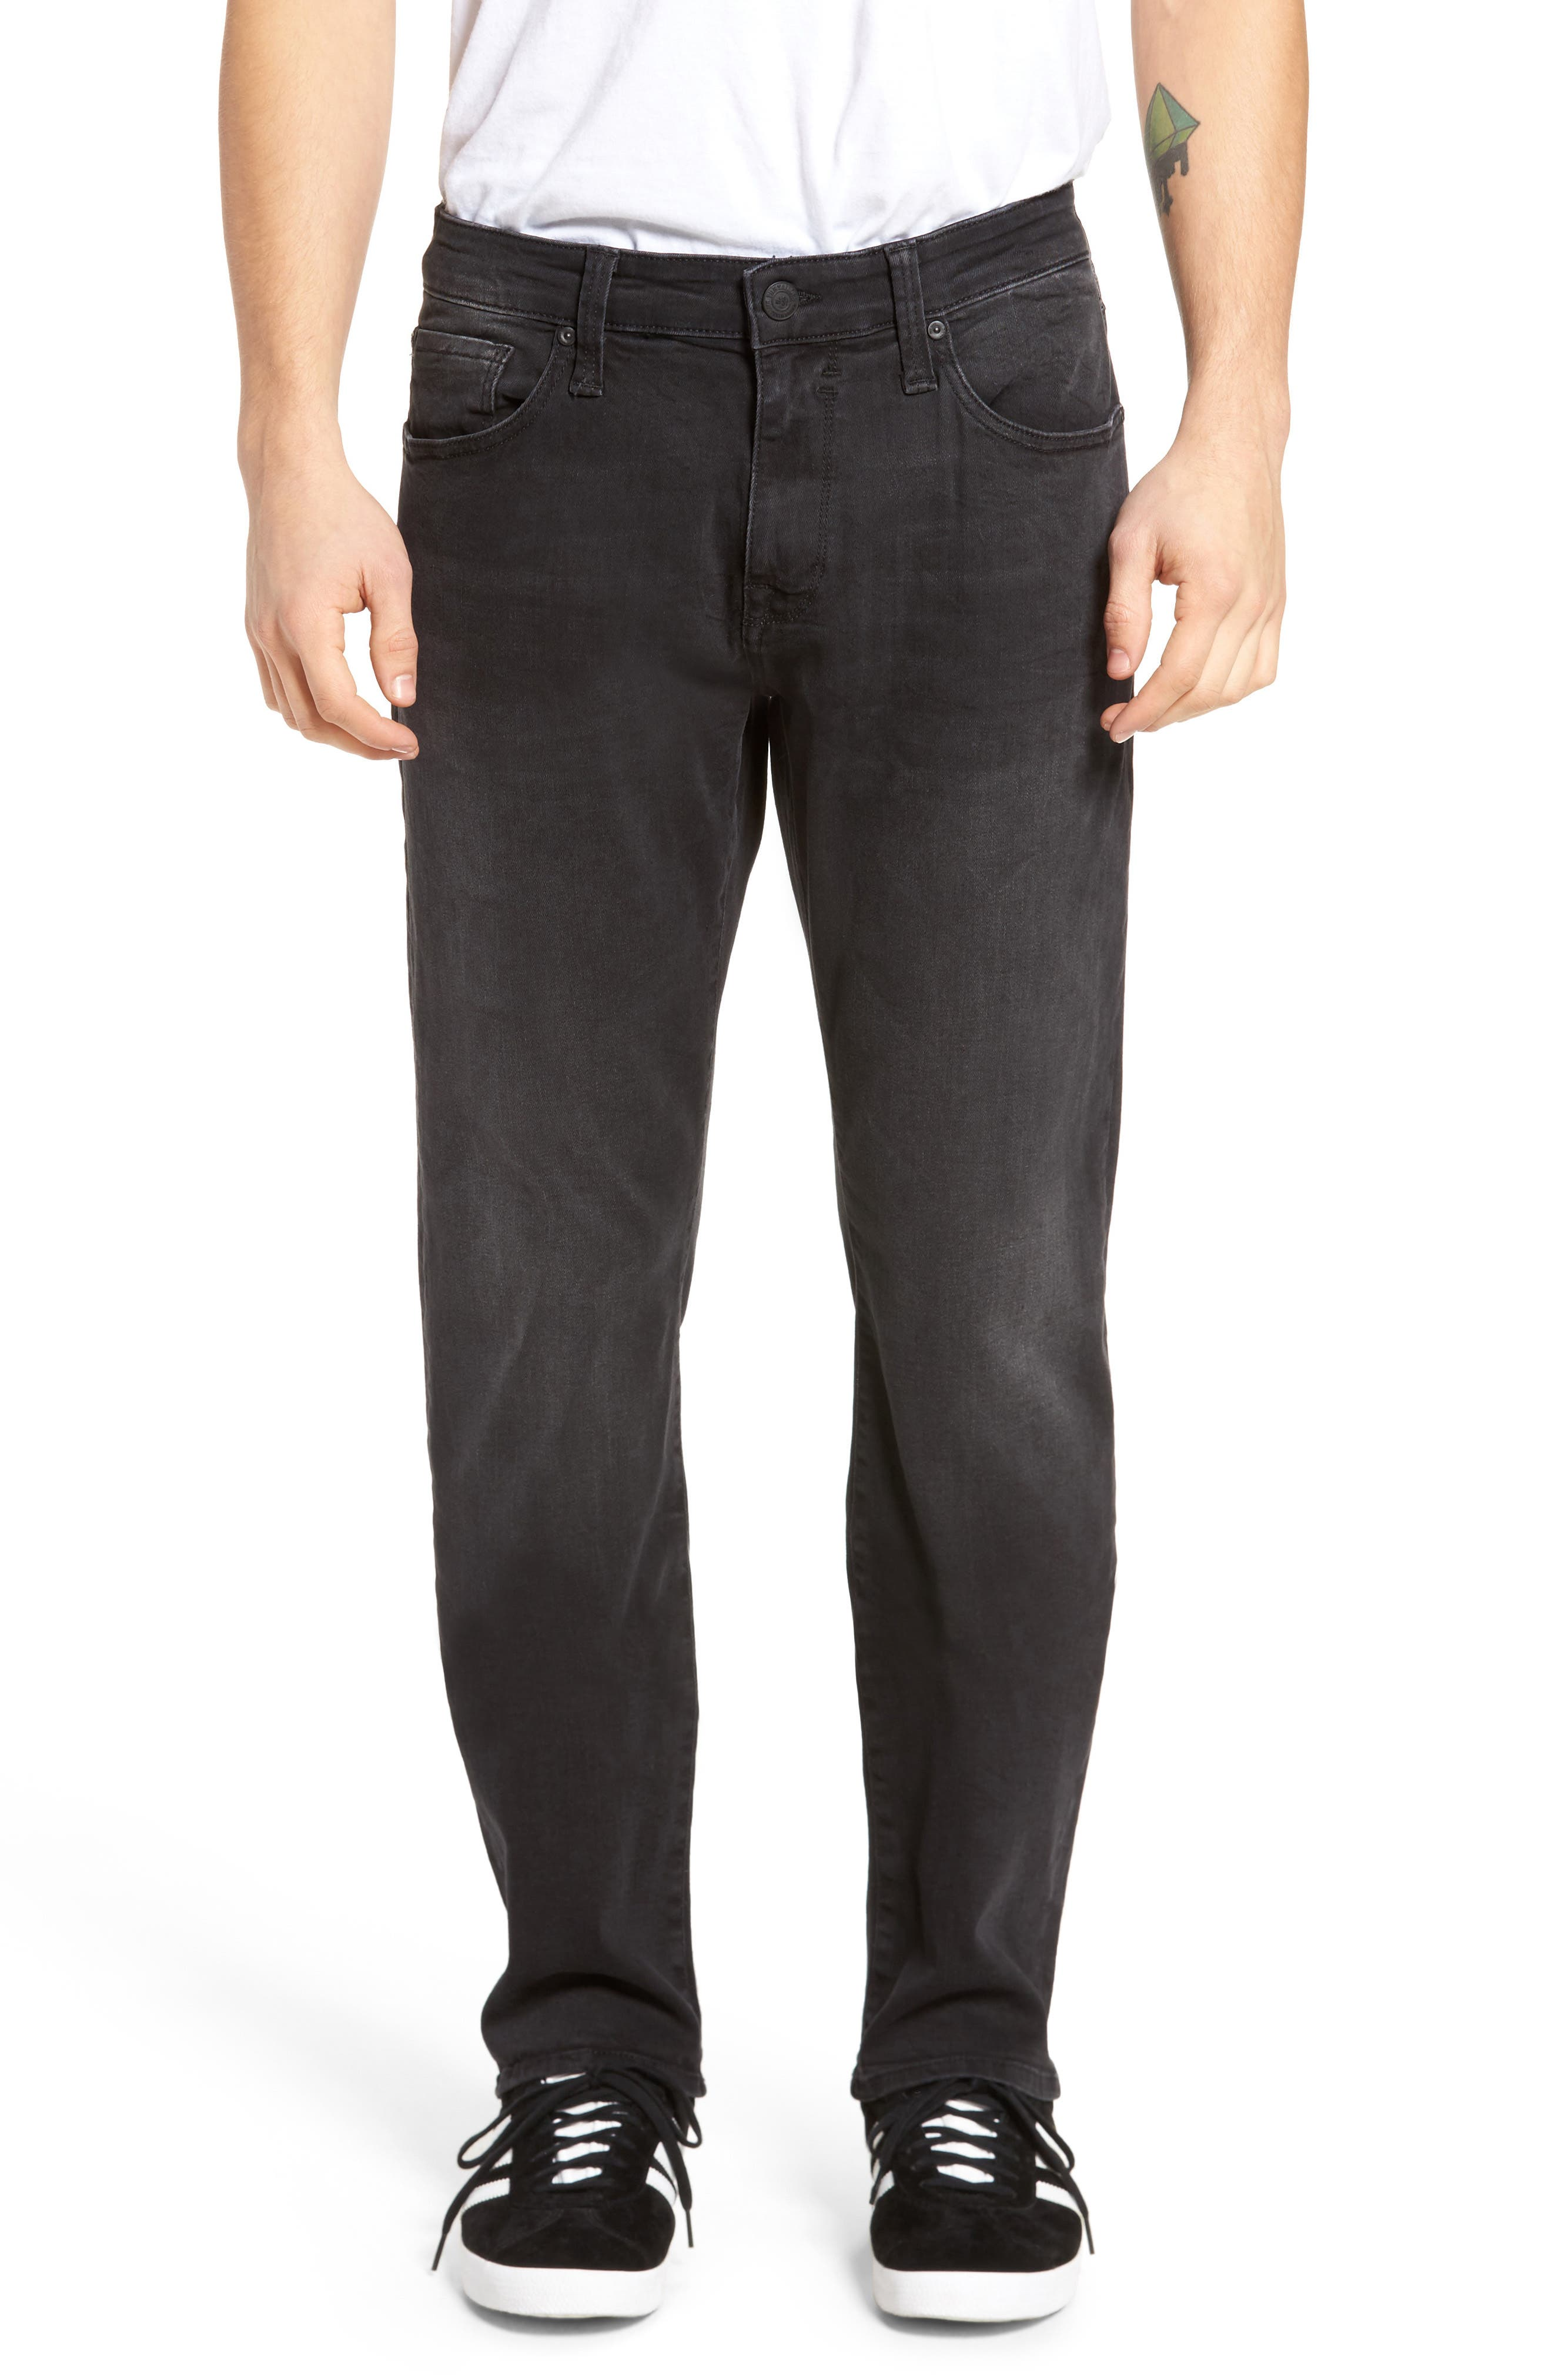 Zach Straight Fit Jeans,                             Main thumbnail 1, color,                             050